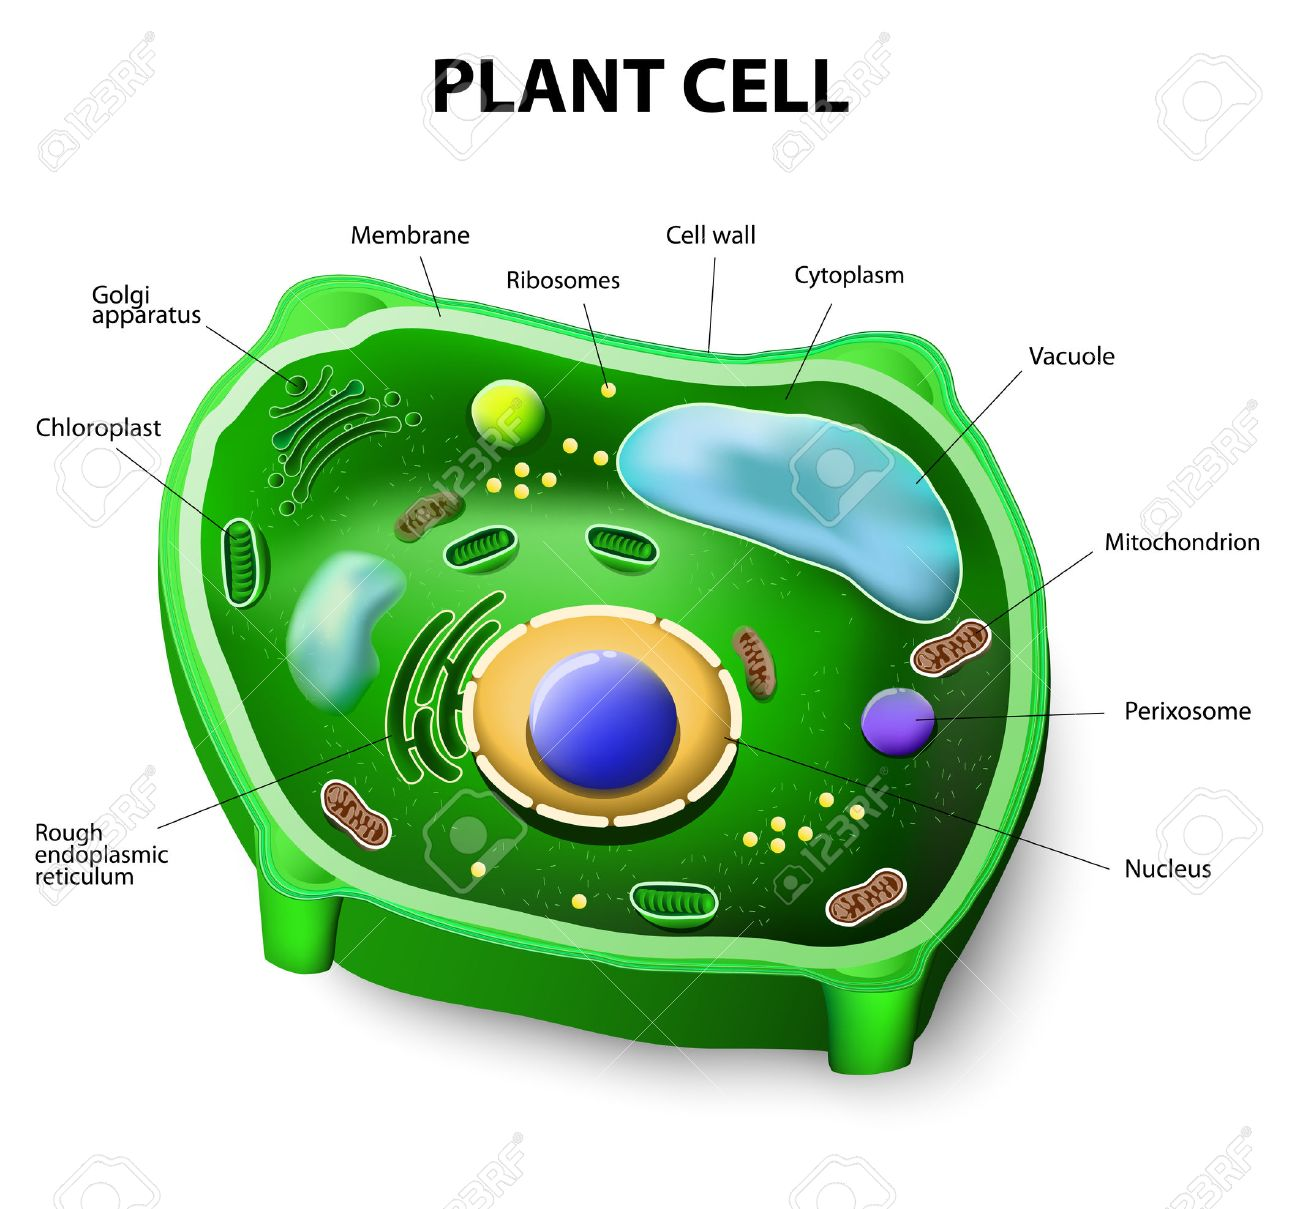 Image result for plant cell